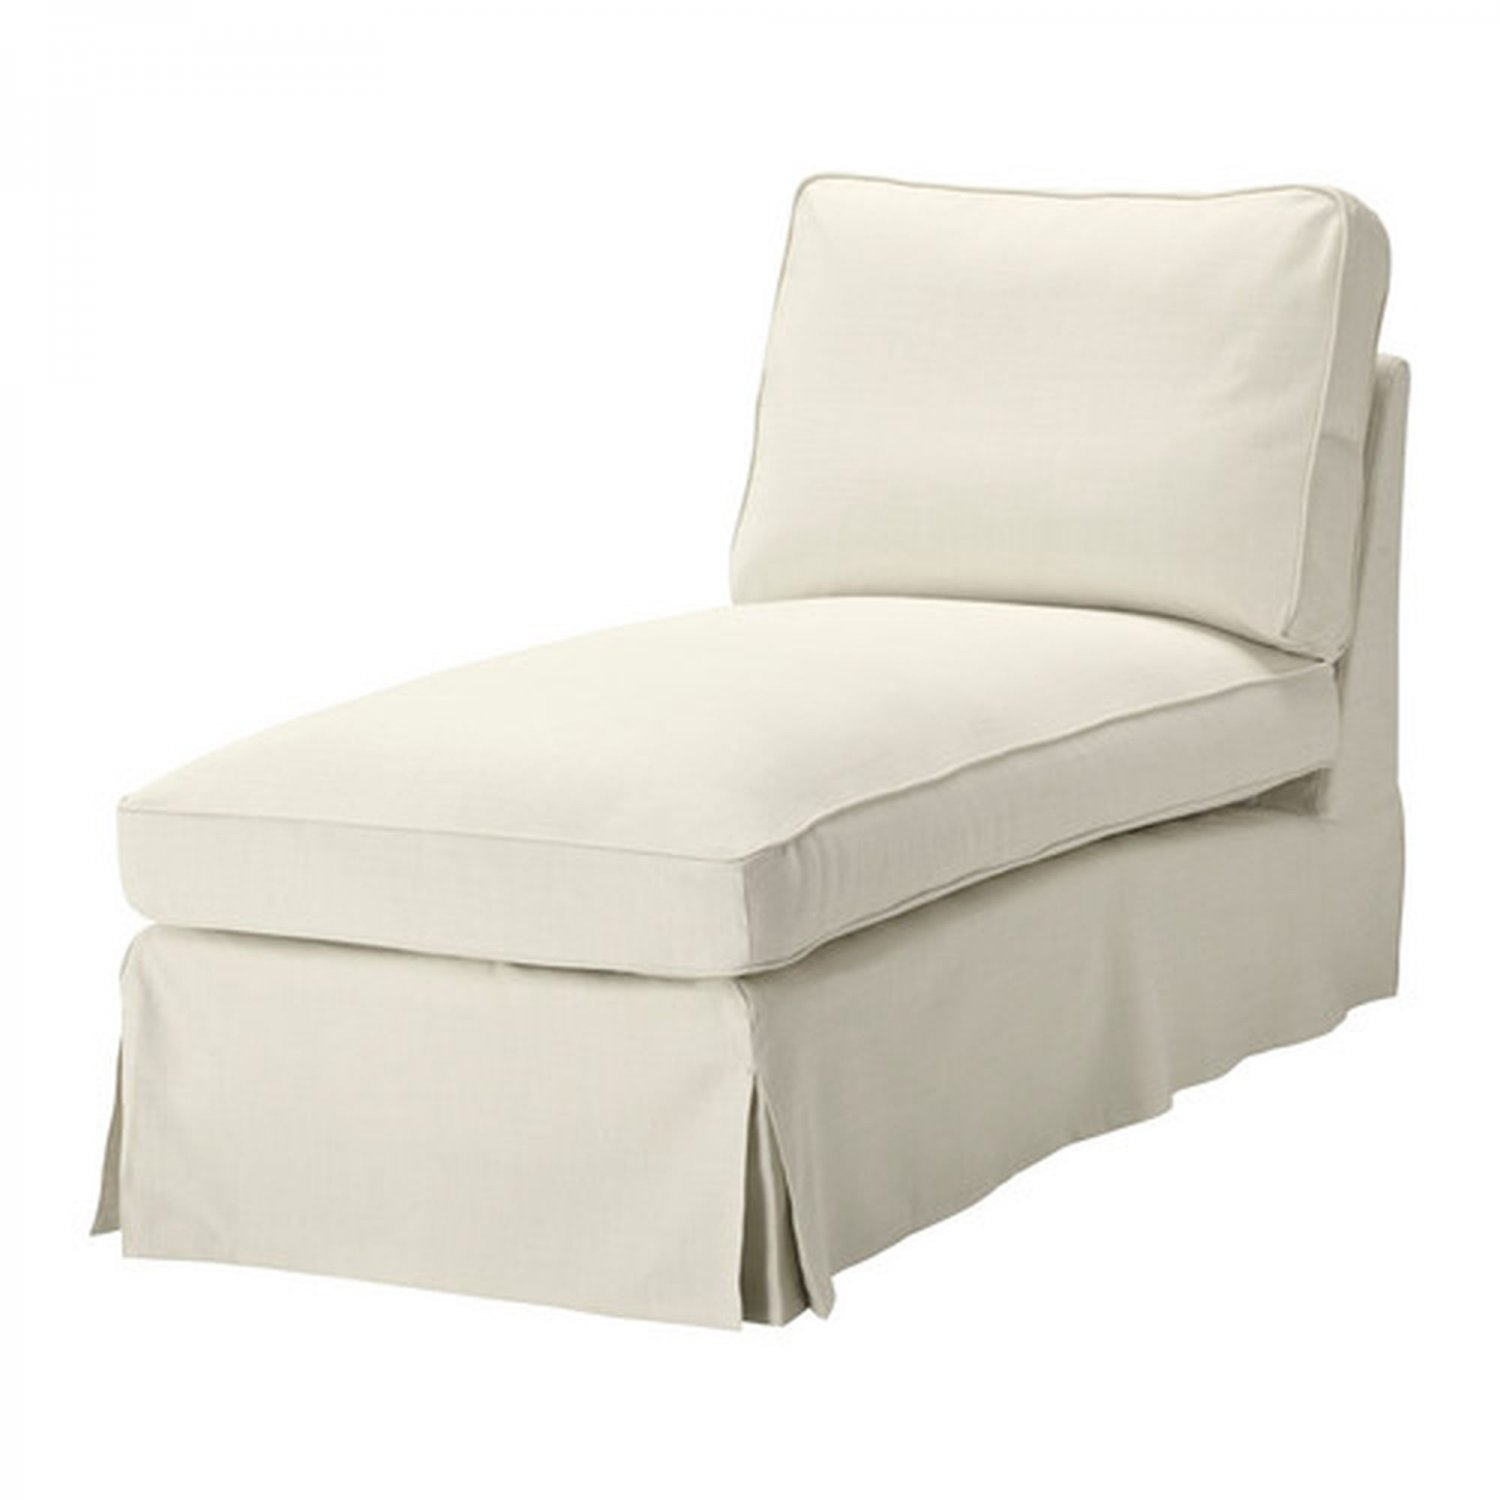 Ikea ektorp free standing chaise longue cover slipcover for Chaise longue ikea uk